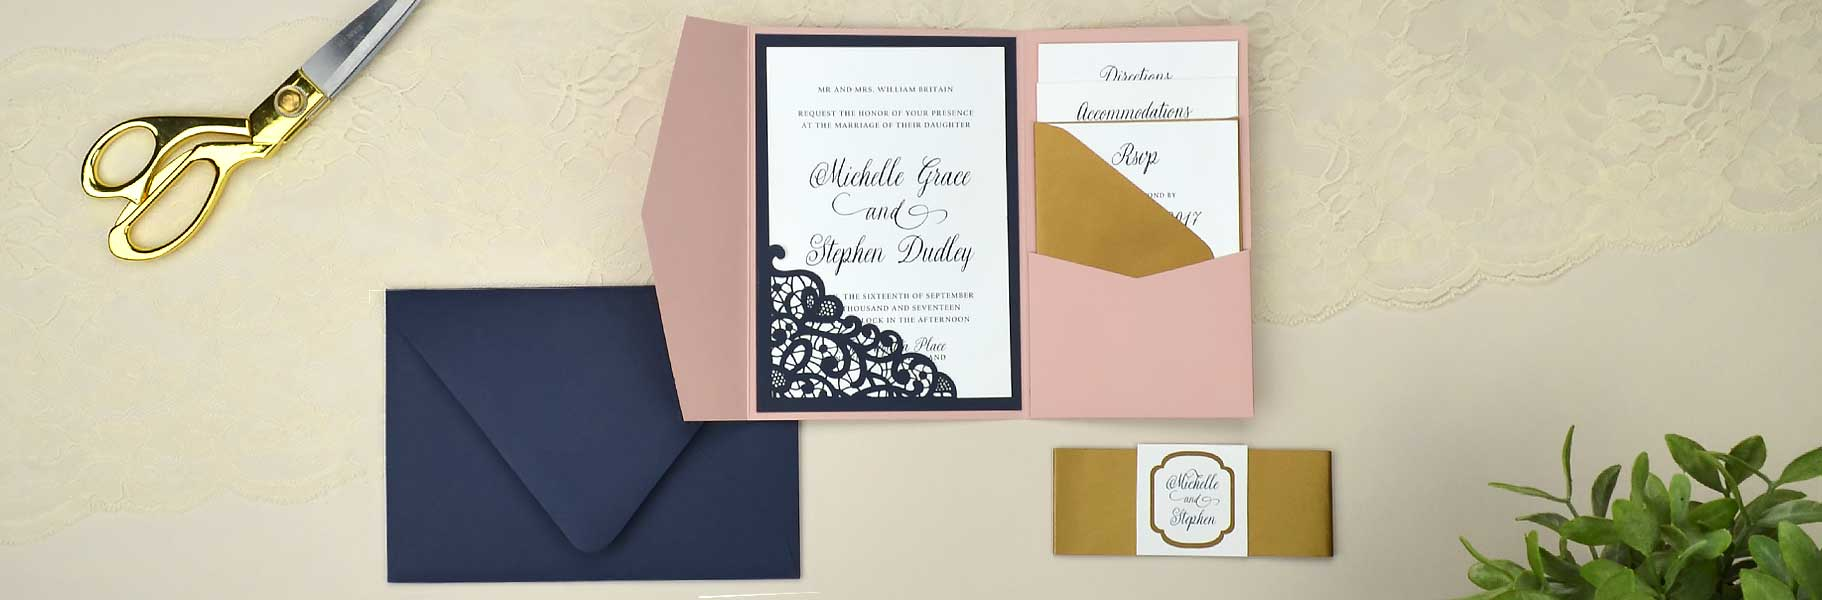 Wedding Invitations - Cards & Pockets